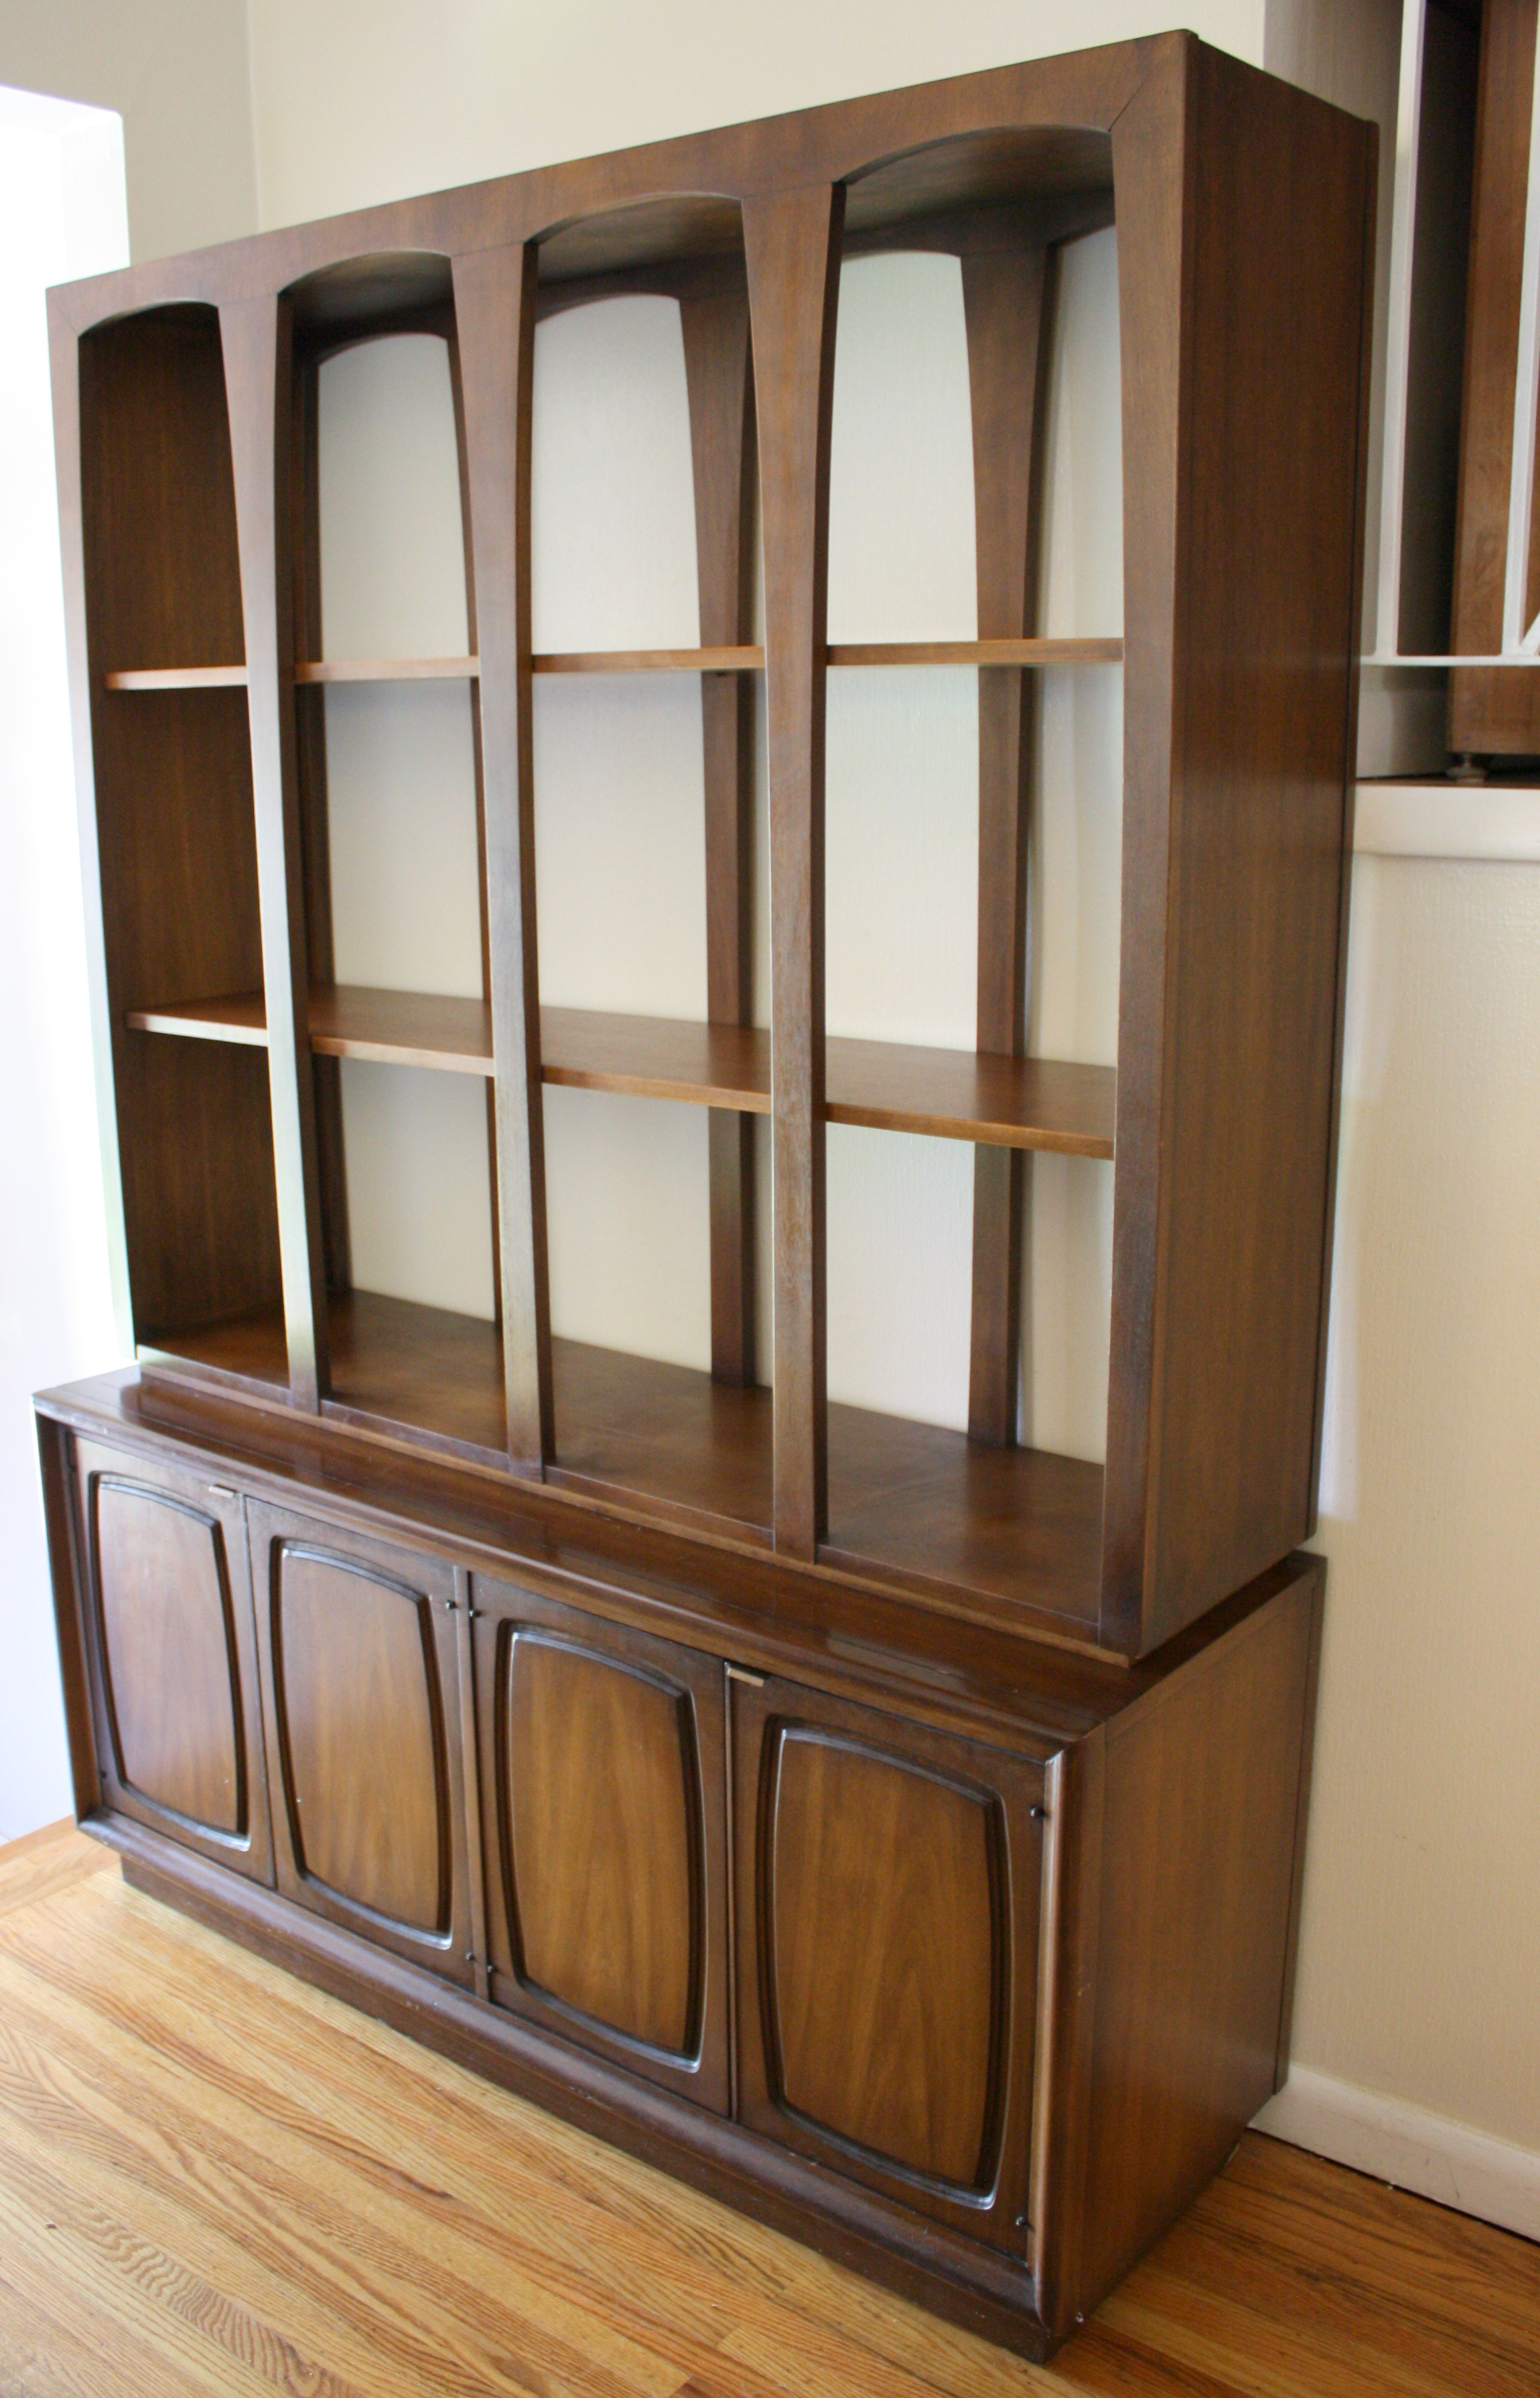 Broyhill Emphasis Room Divider Bookshelf  Credenza